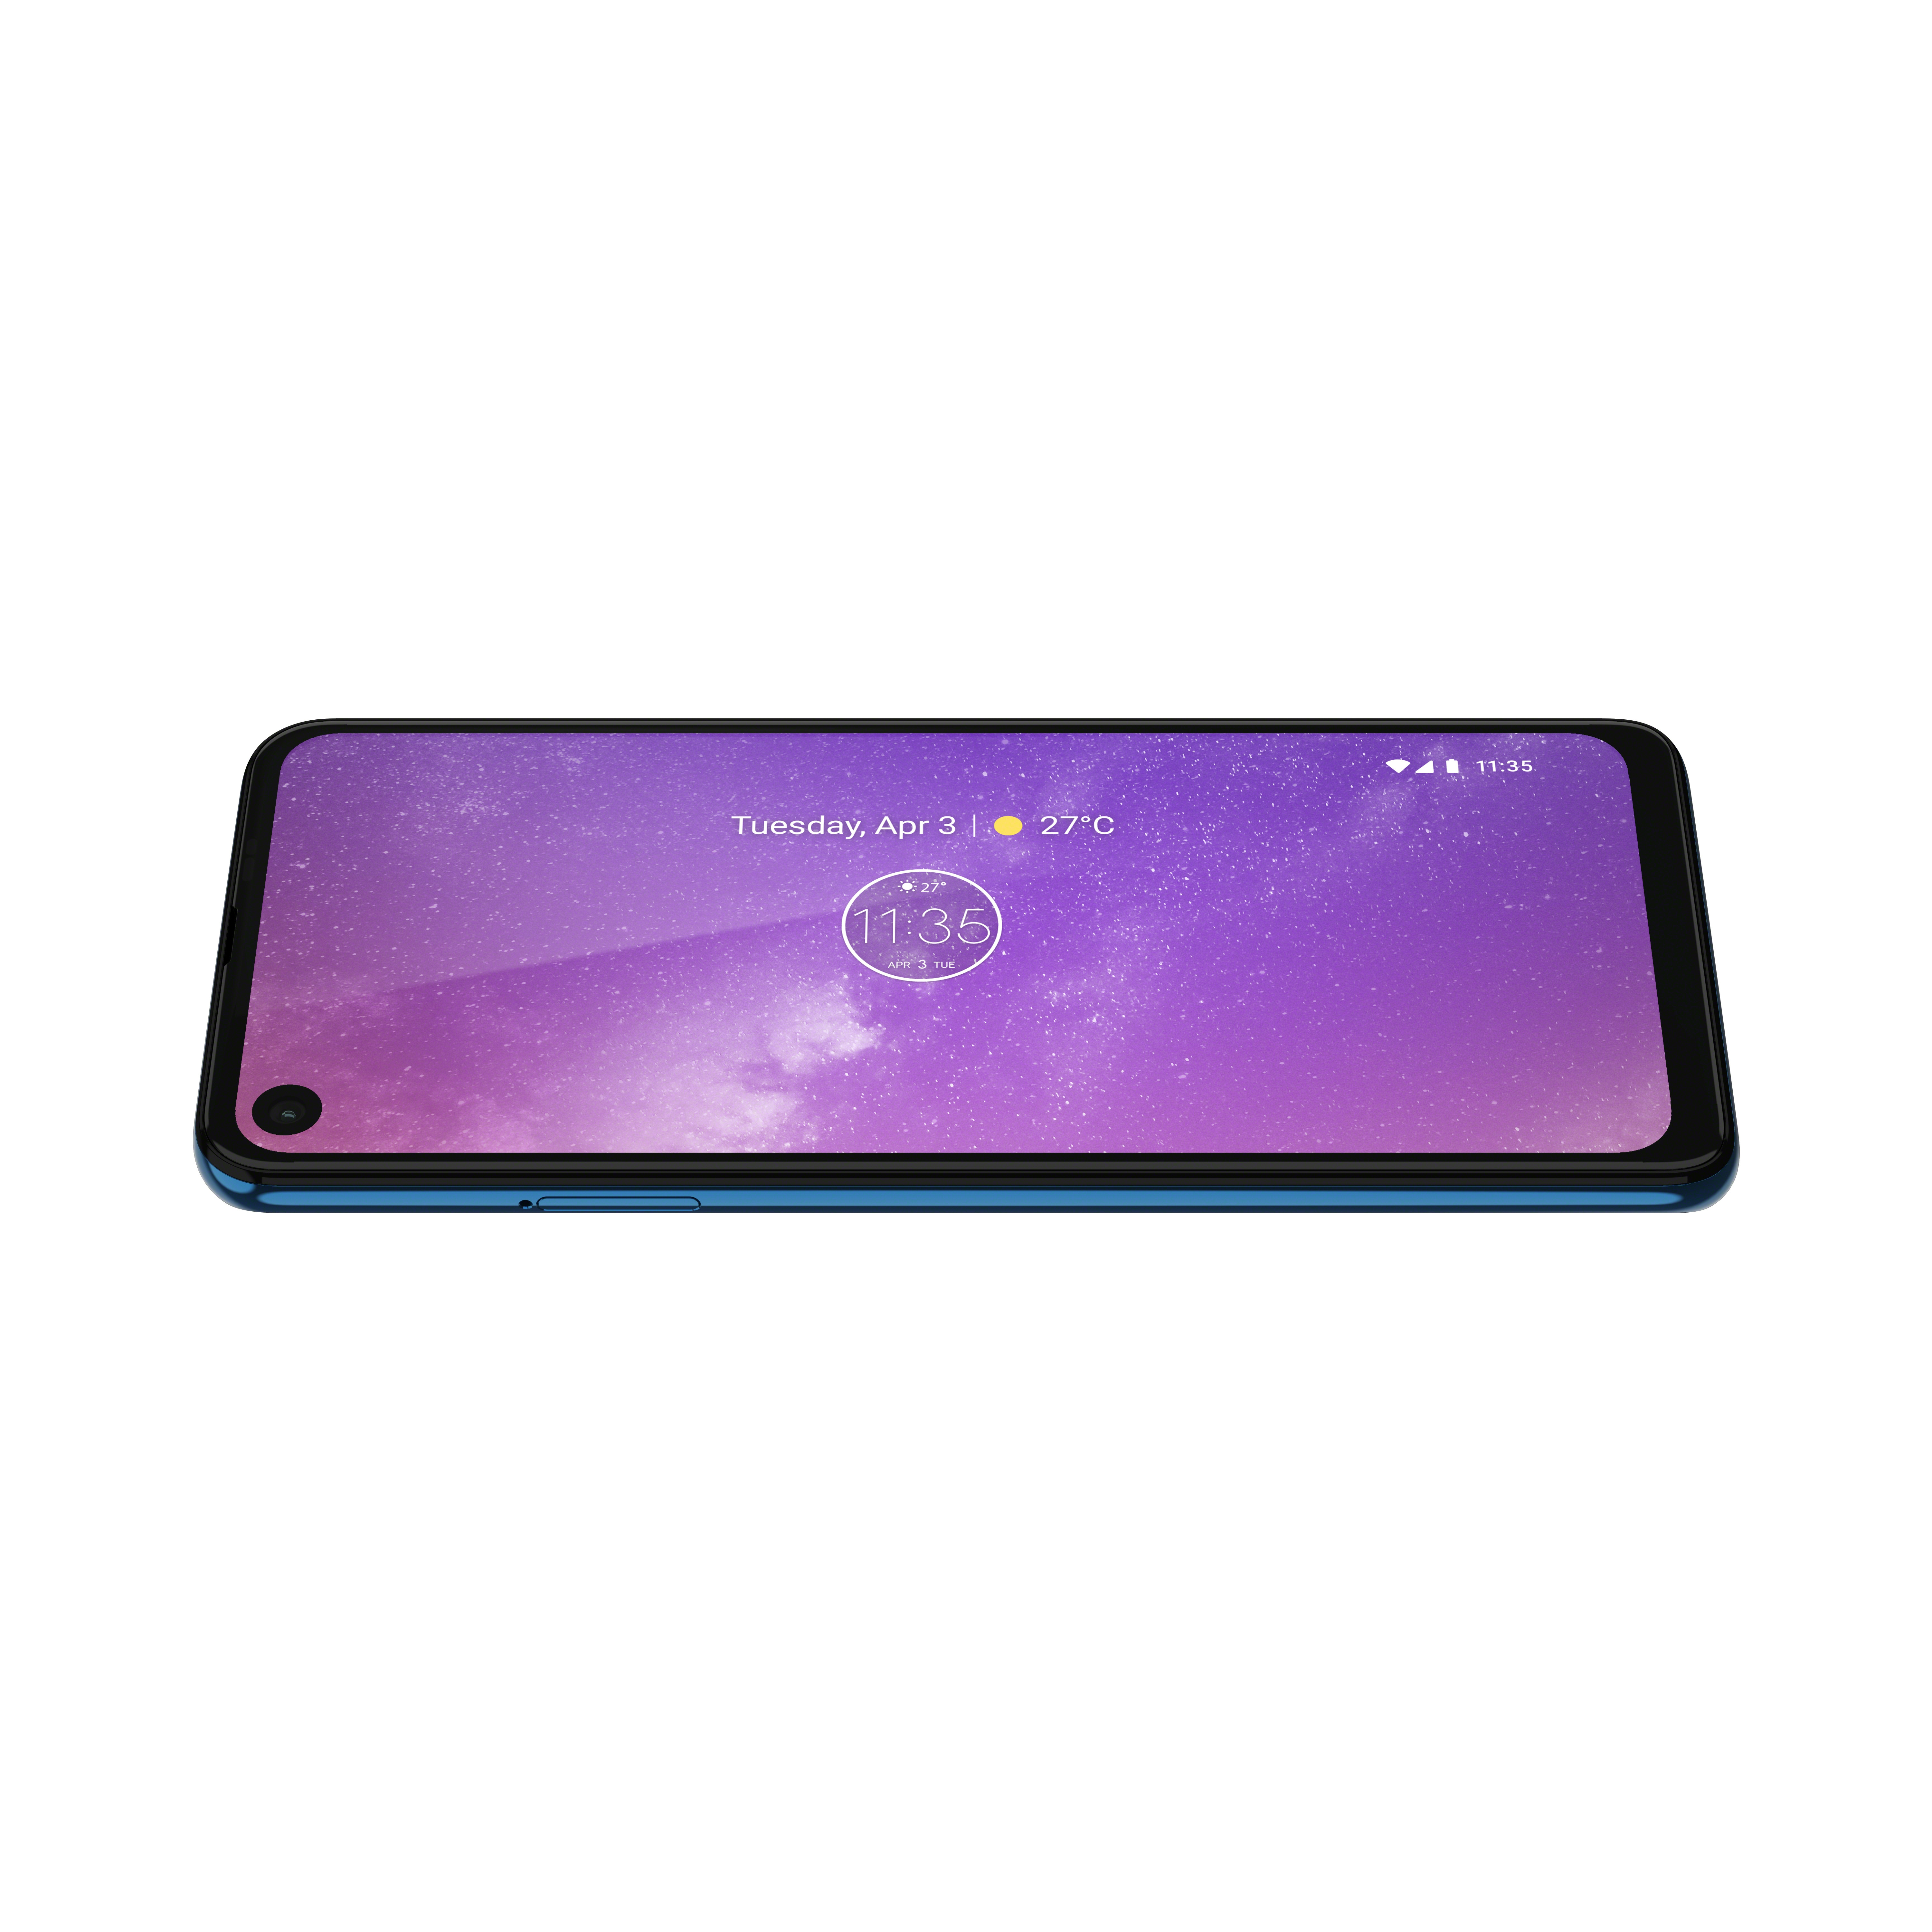 The Motorola One Vision is official with hole-punch camera and